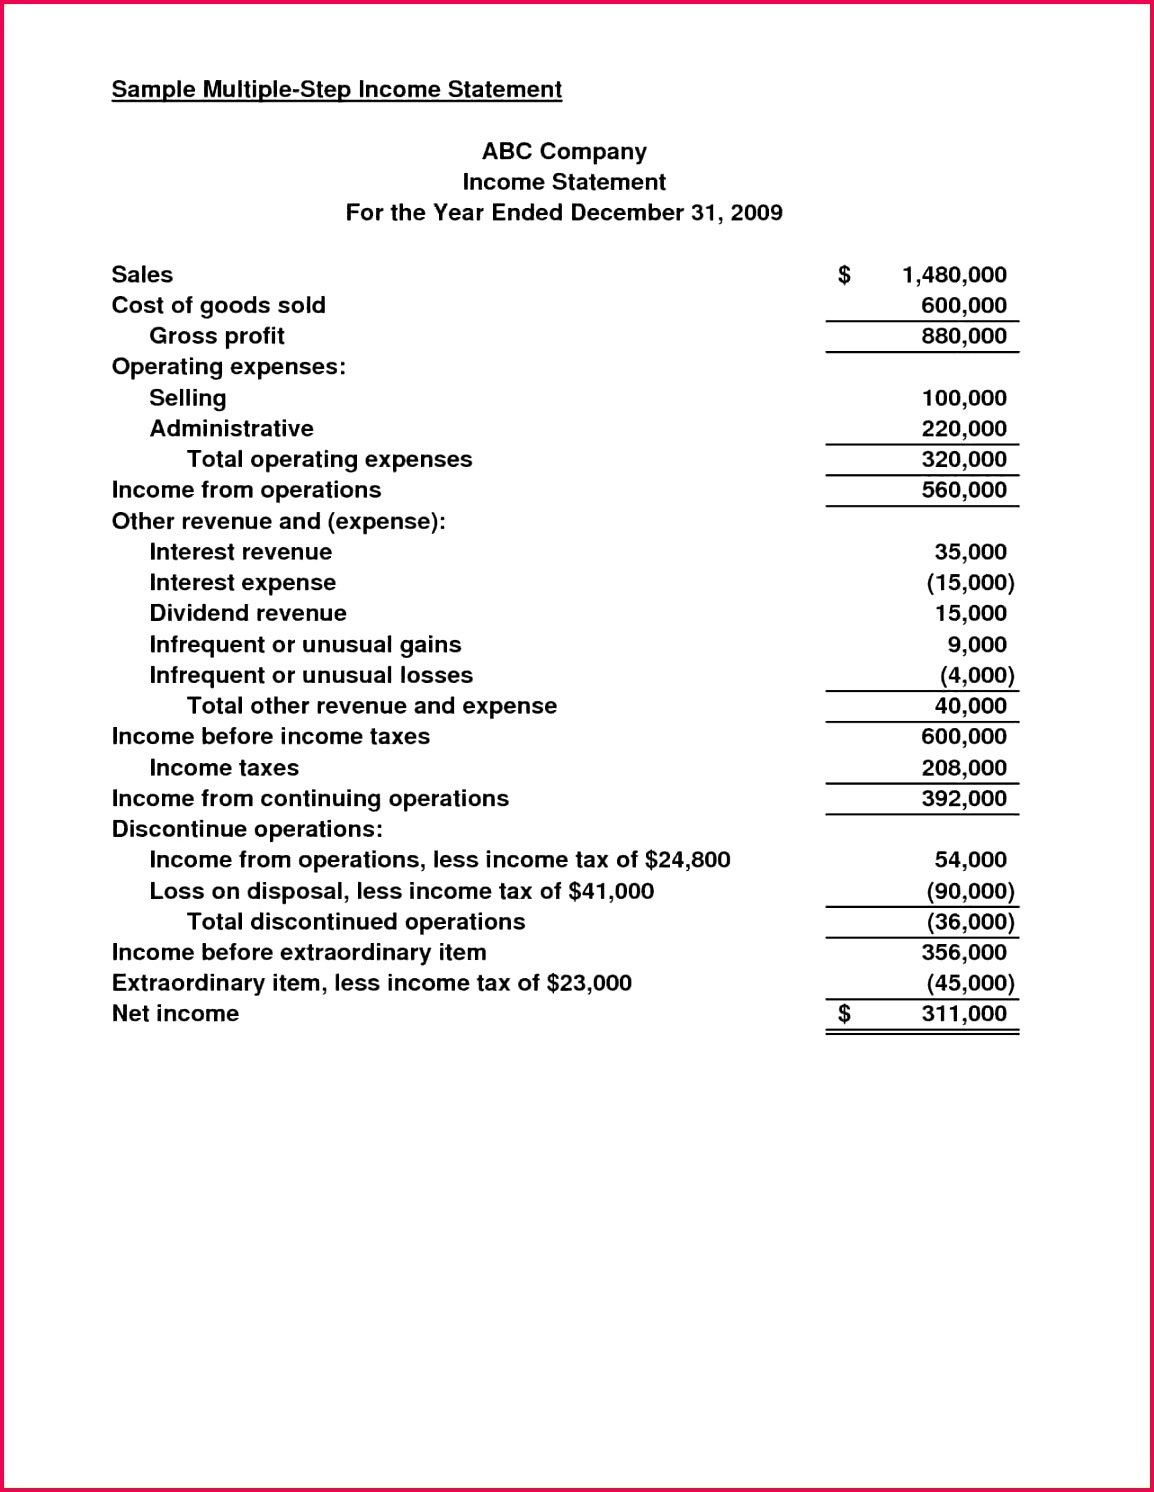 6 Yearly Income Statement Template 70548 | FabTemplatez